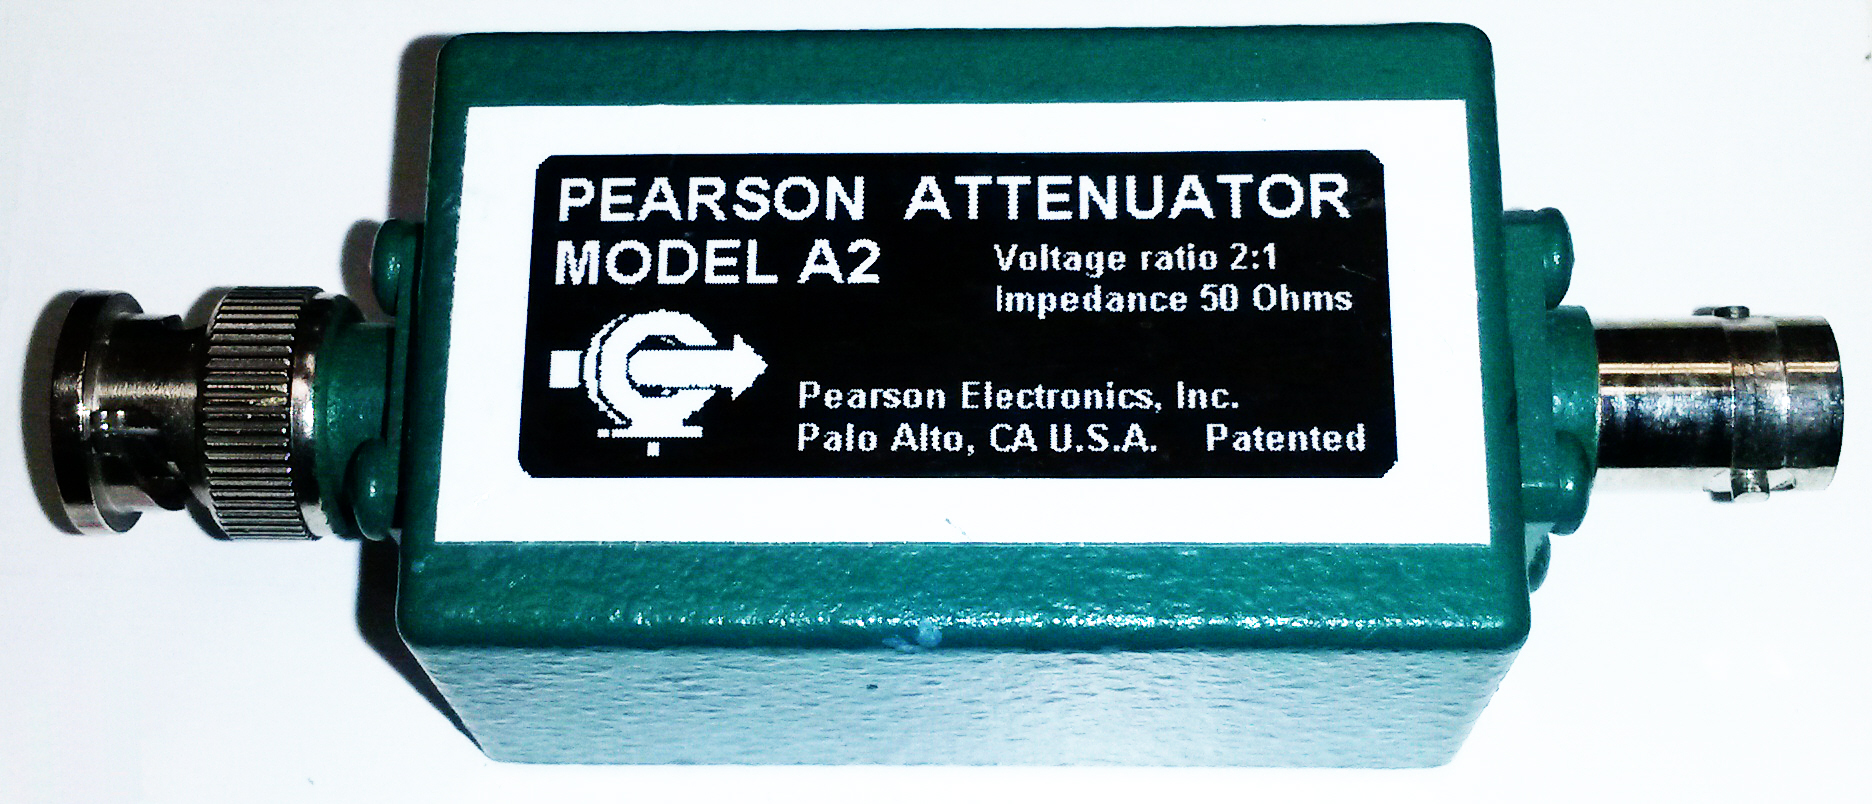 Pearson A10 for sale